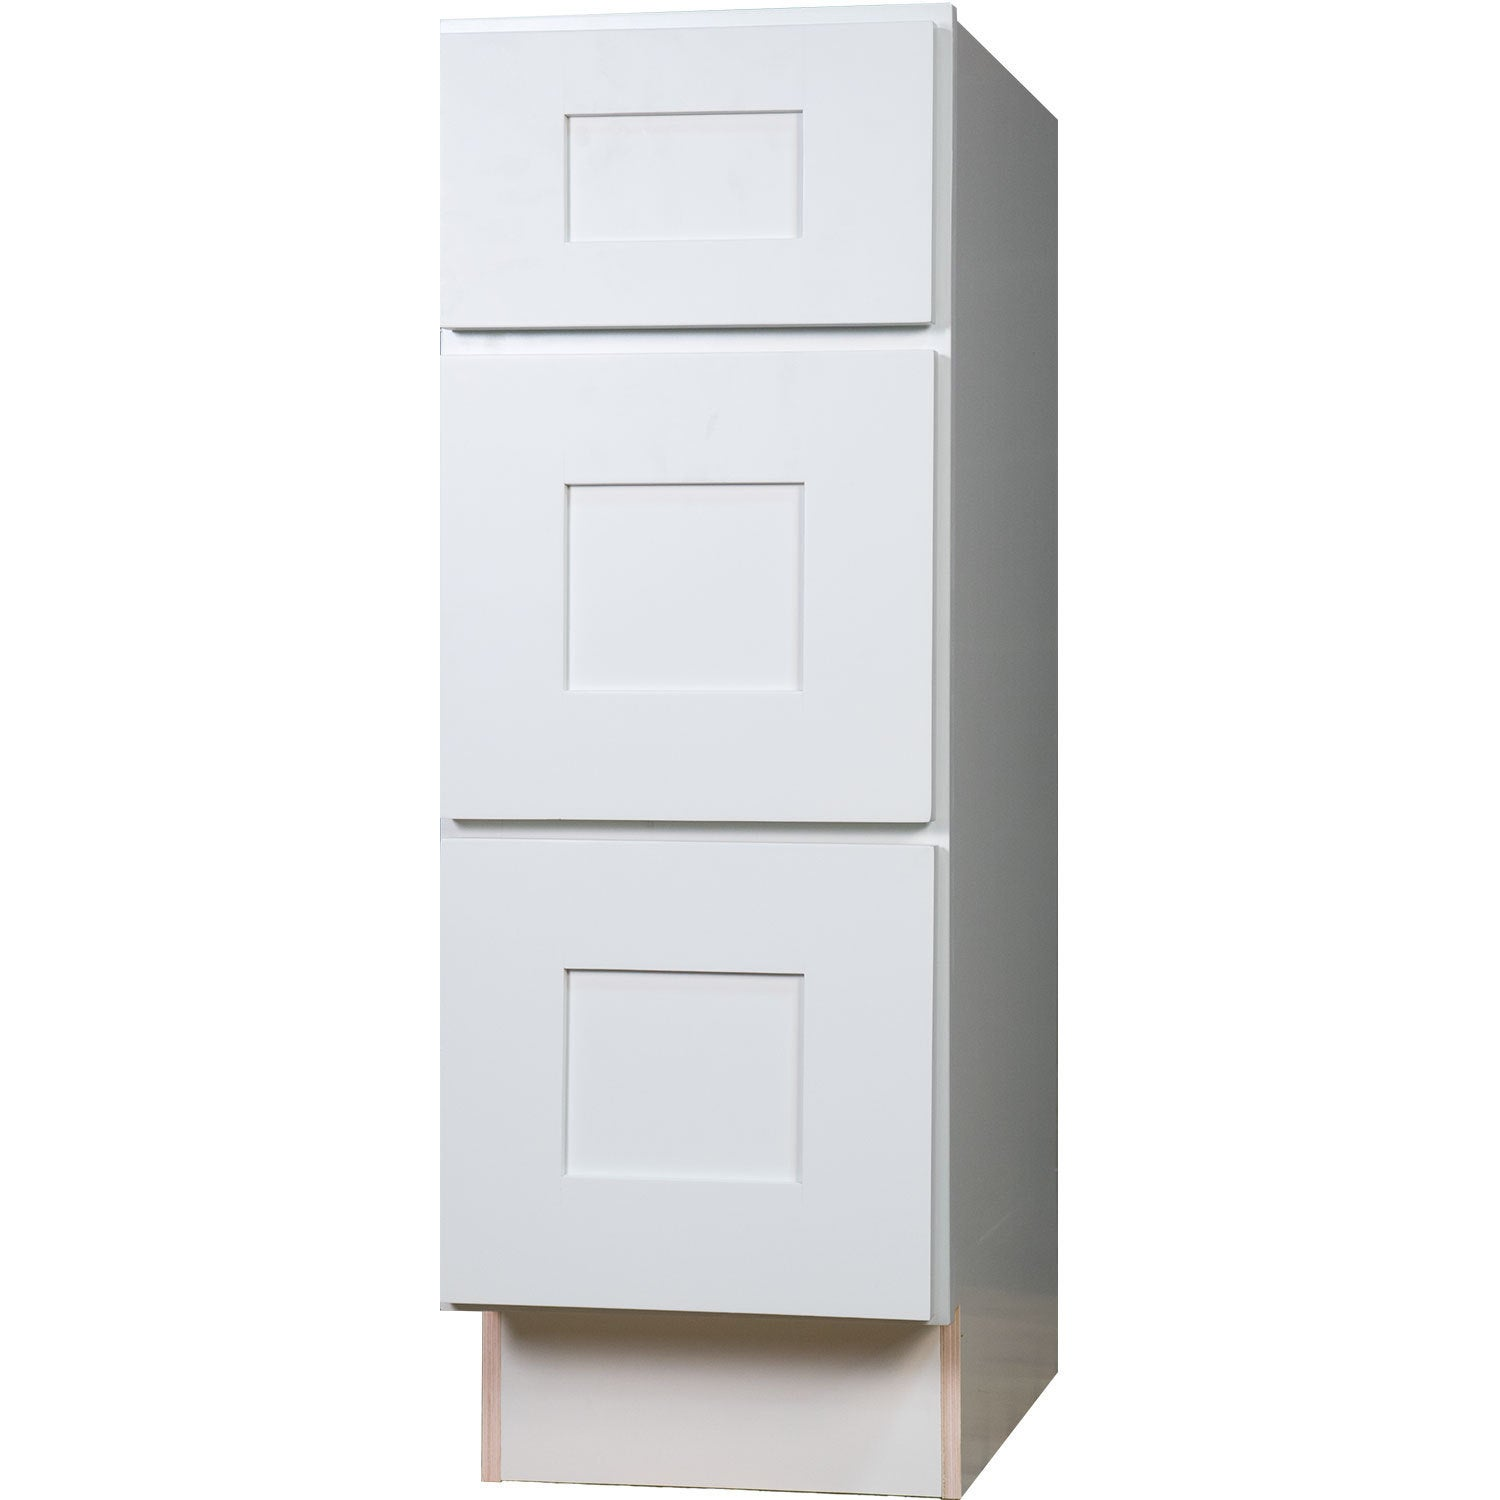 white shaker bathroom vanity. Everyday Cabinets White Shaker 12-inch Bathroom Vanity Drawer Base Cabinet - Free Shipping Today Overstock 18936881 N